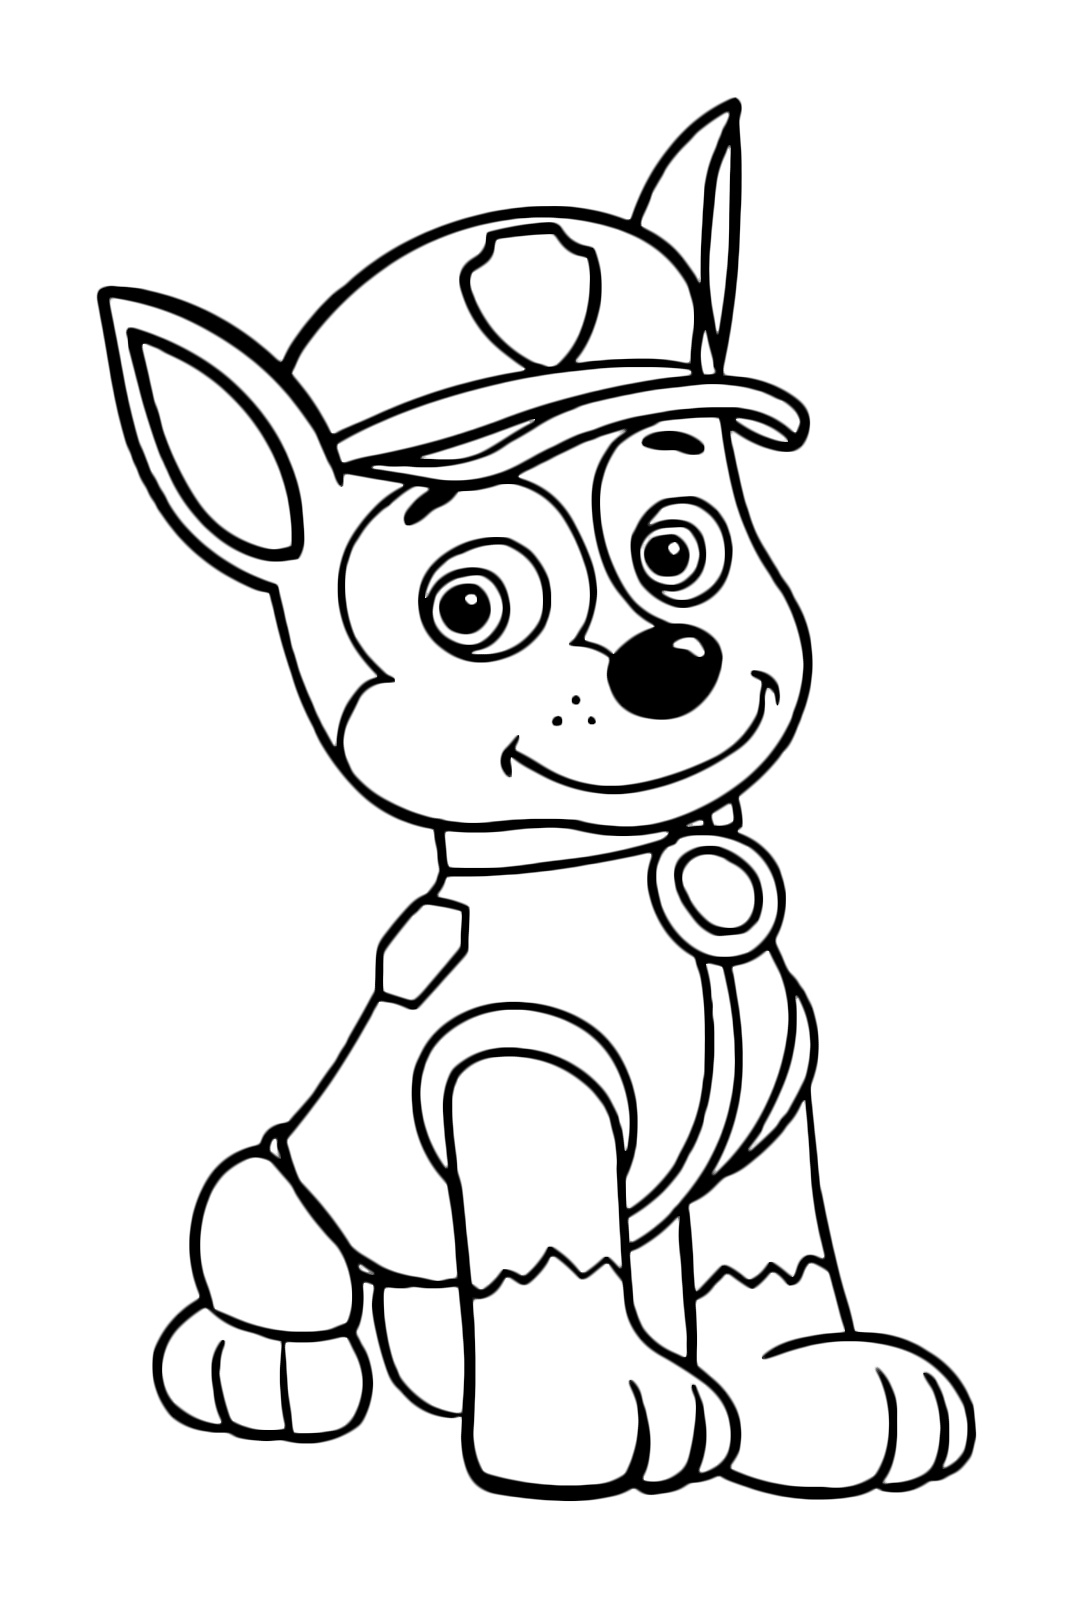 free paw patrol coloring pages paw patrol colouring paw patrol coloring pages print coloring free patrol paw pages